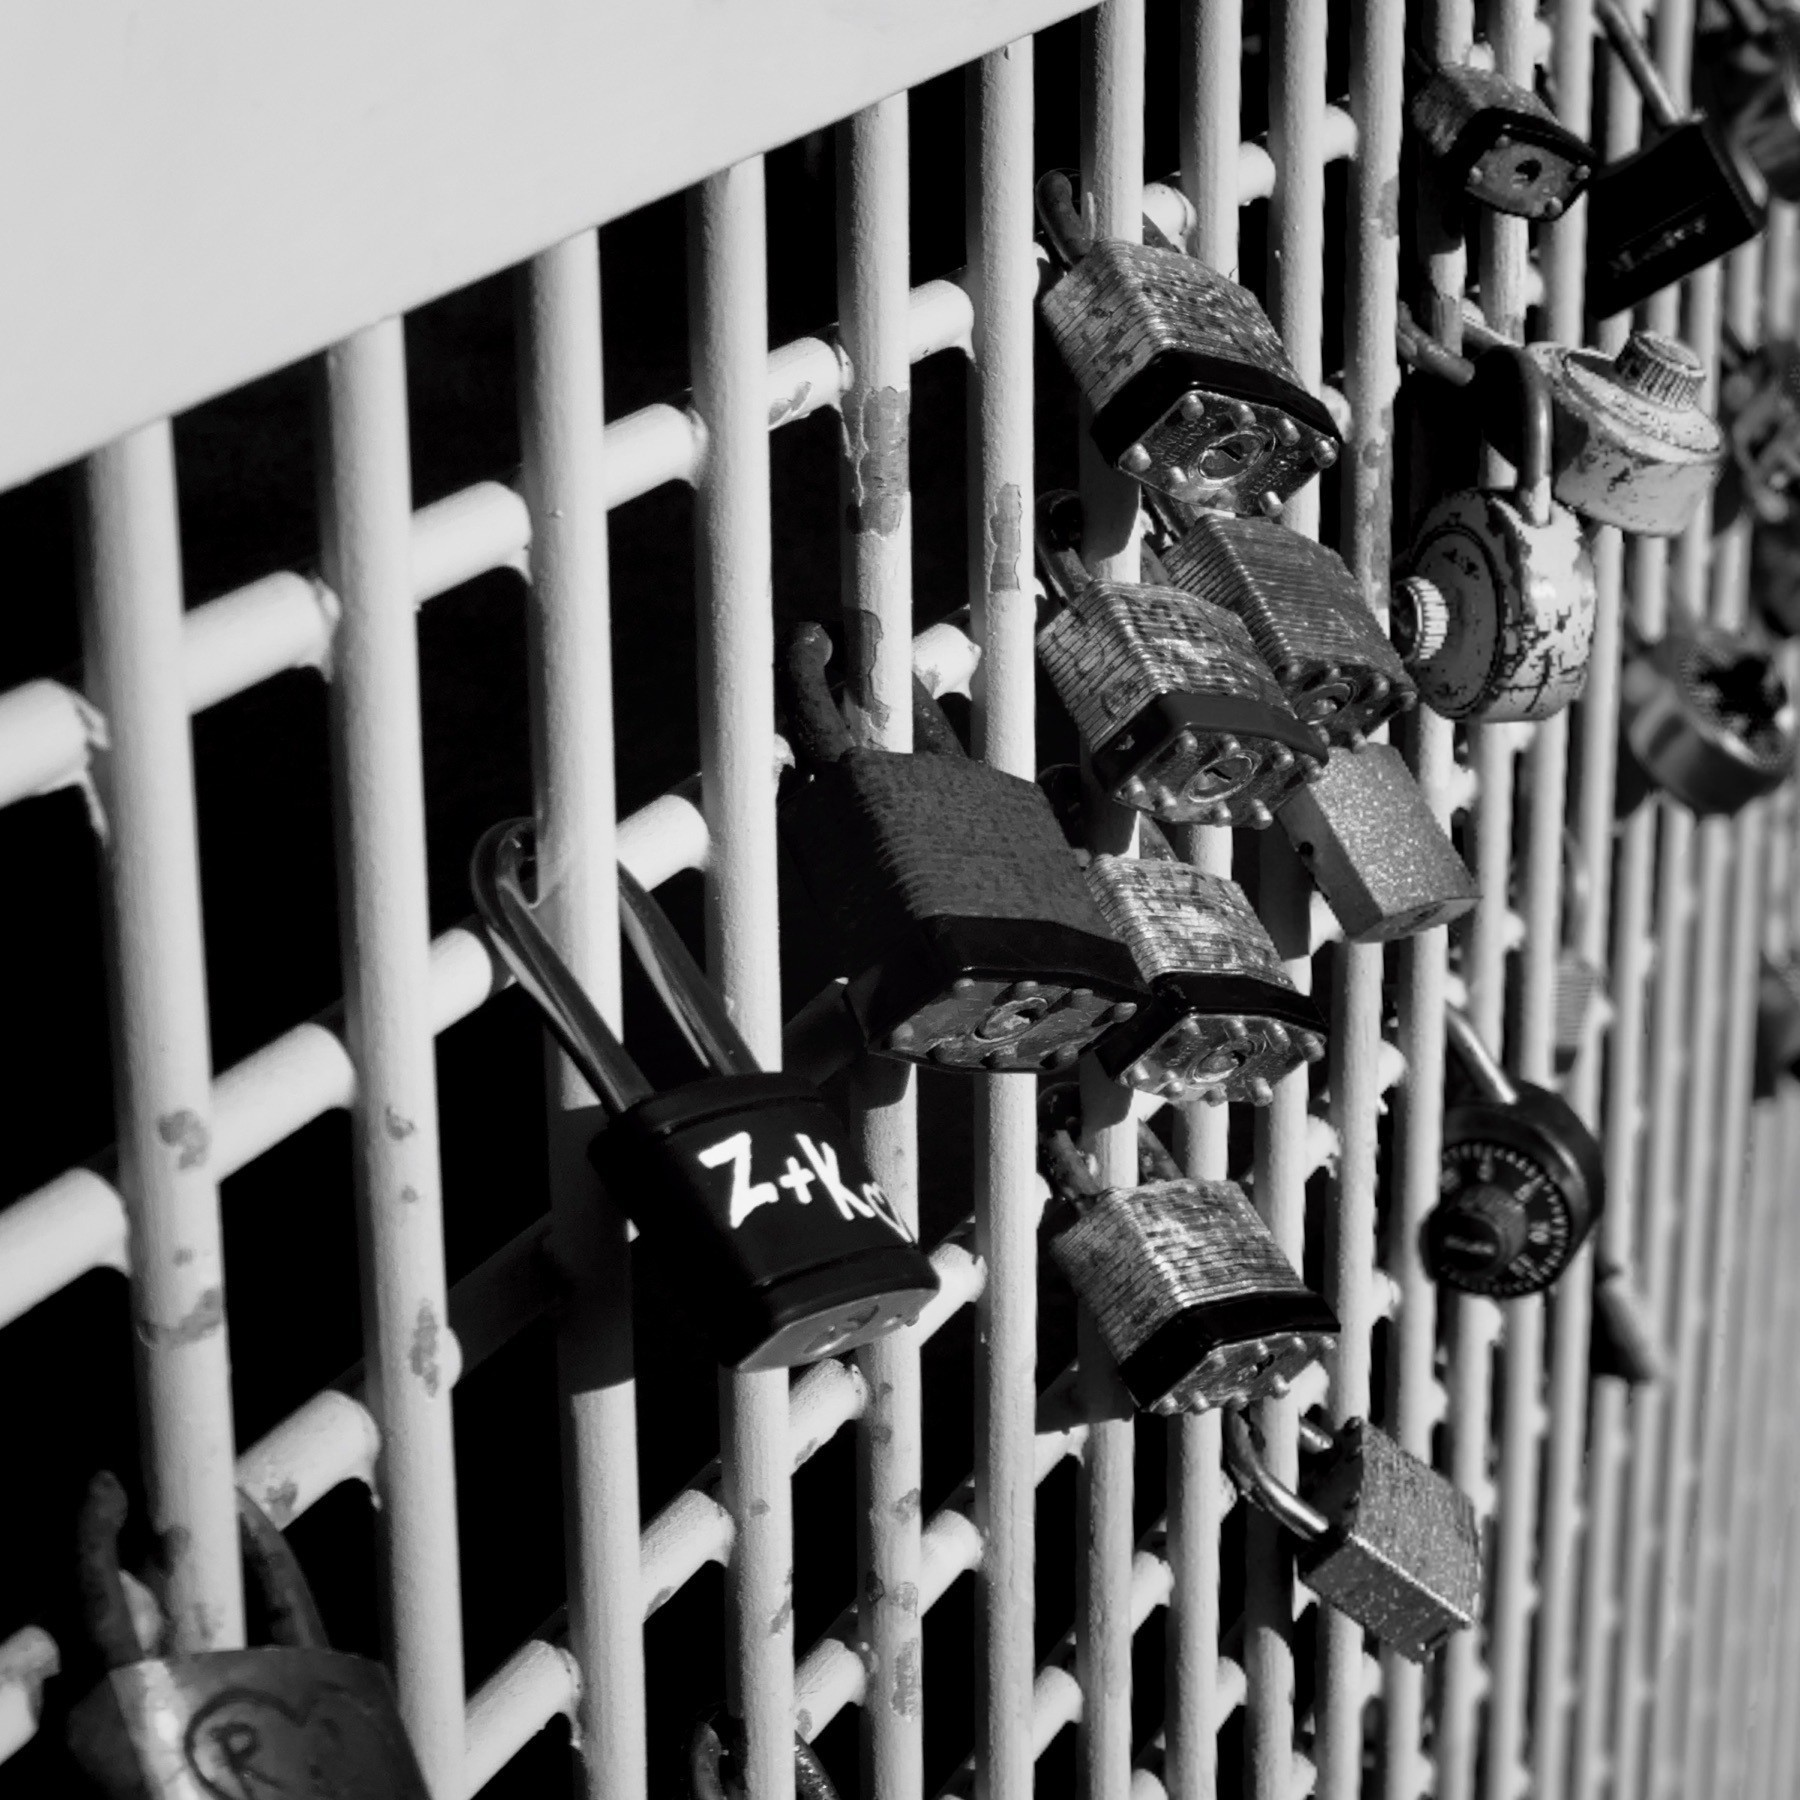 Padlocks attached to an iron gate.